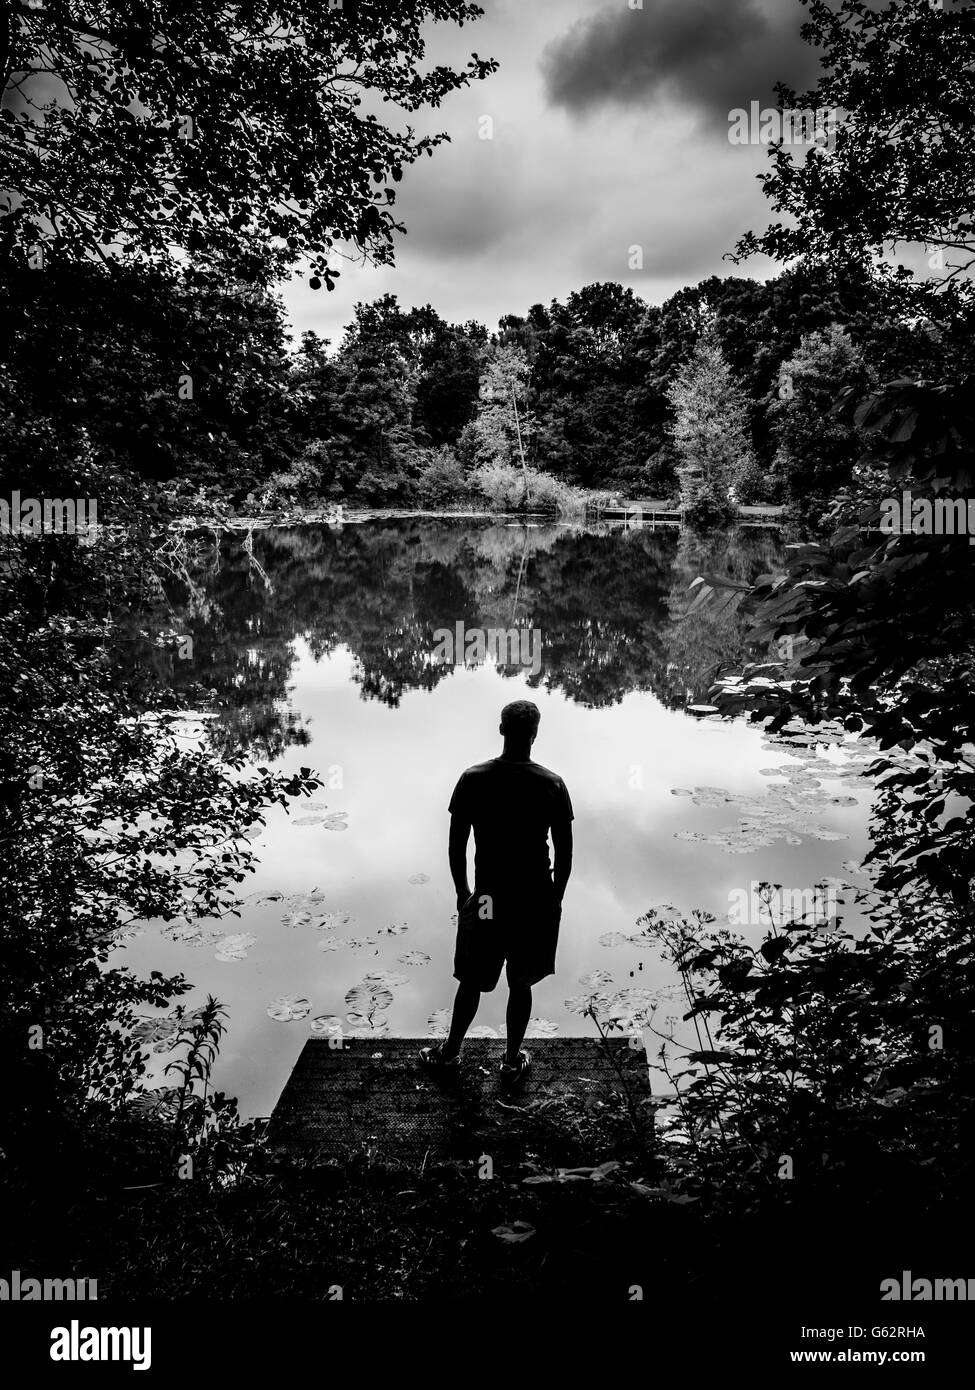 Silhouette of man stood on wooden jetty looking gout over lake with trees surrounding edges - Stock Image